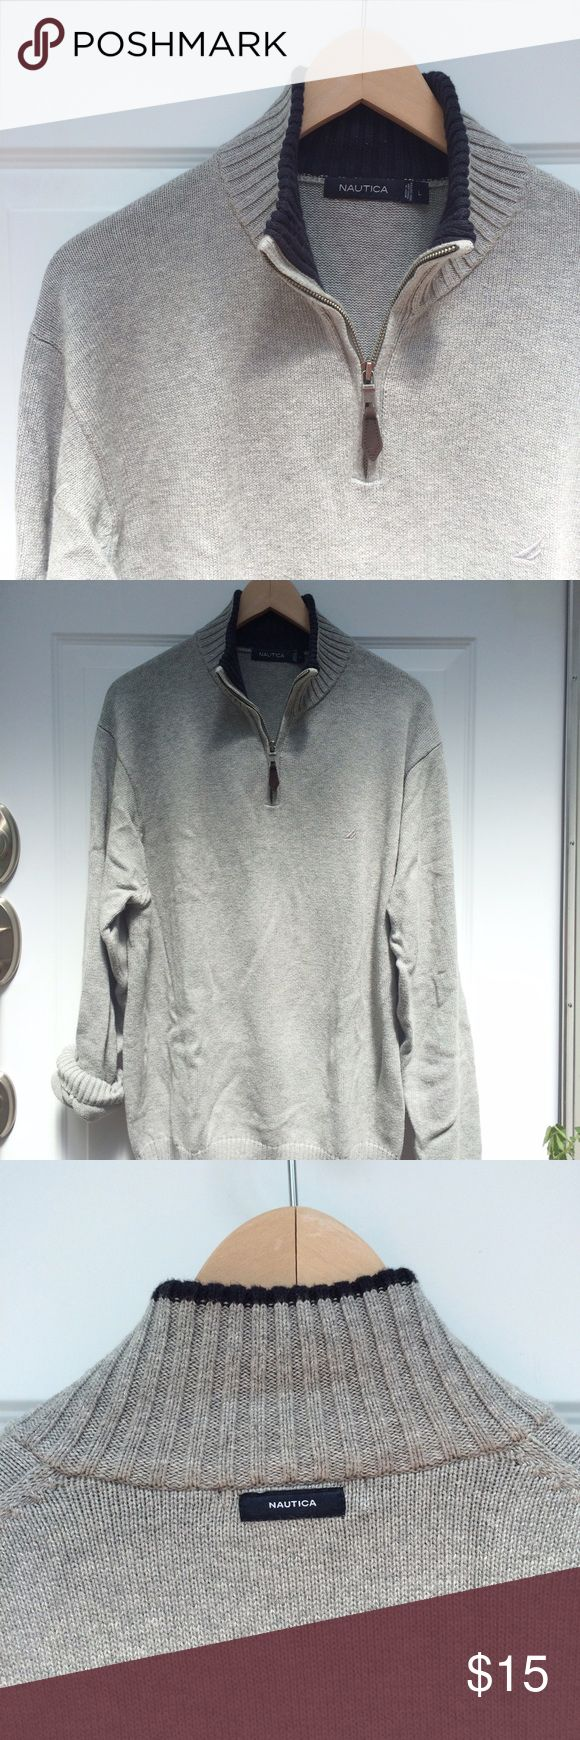 Nautica men's half zip sweater Light heathered grey men's half zip sweater by Nautica. Collar is navy blue. 100% cotton. Overall excellent used condition however some stains on the sleeve.  See pic. Price reflects condition. Nautica Sweaters